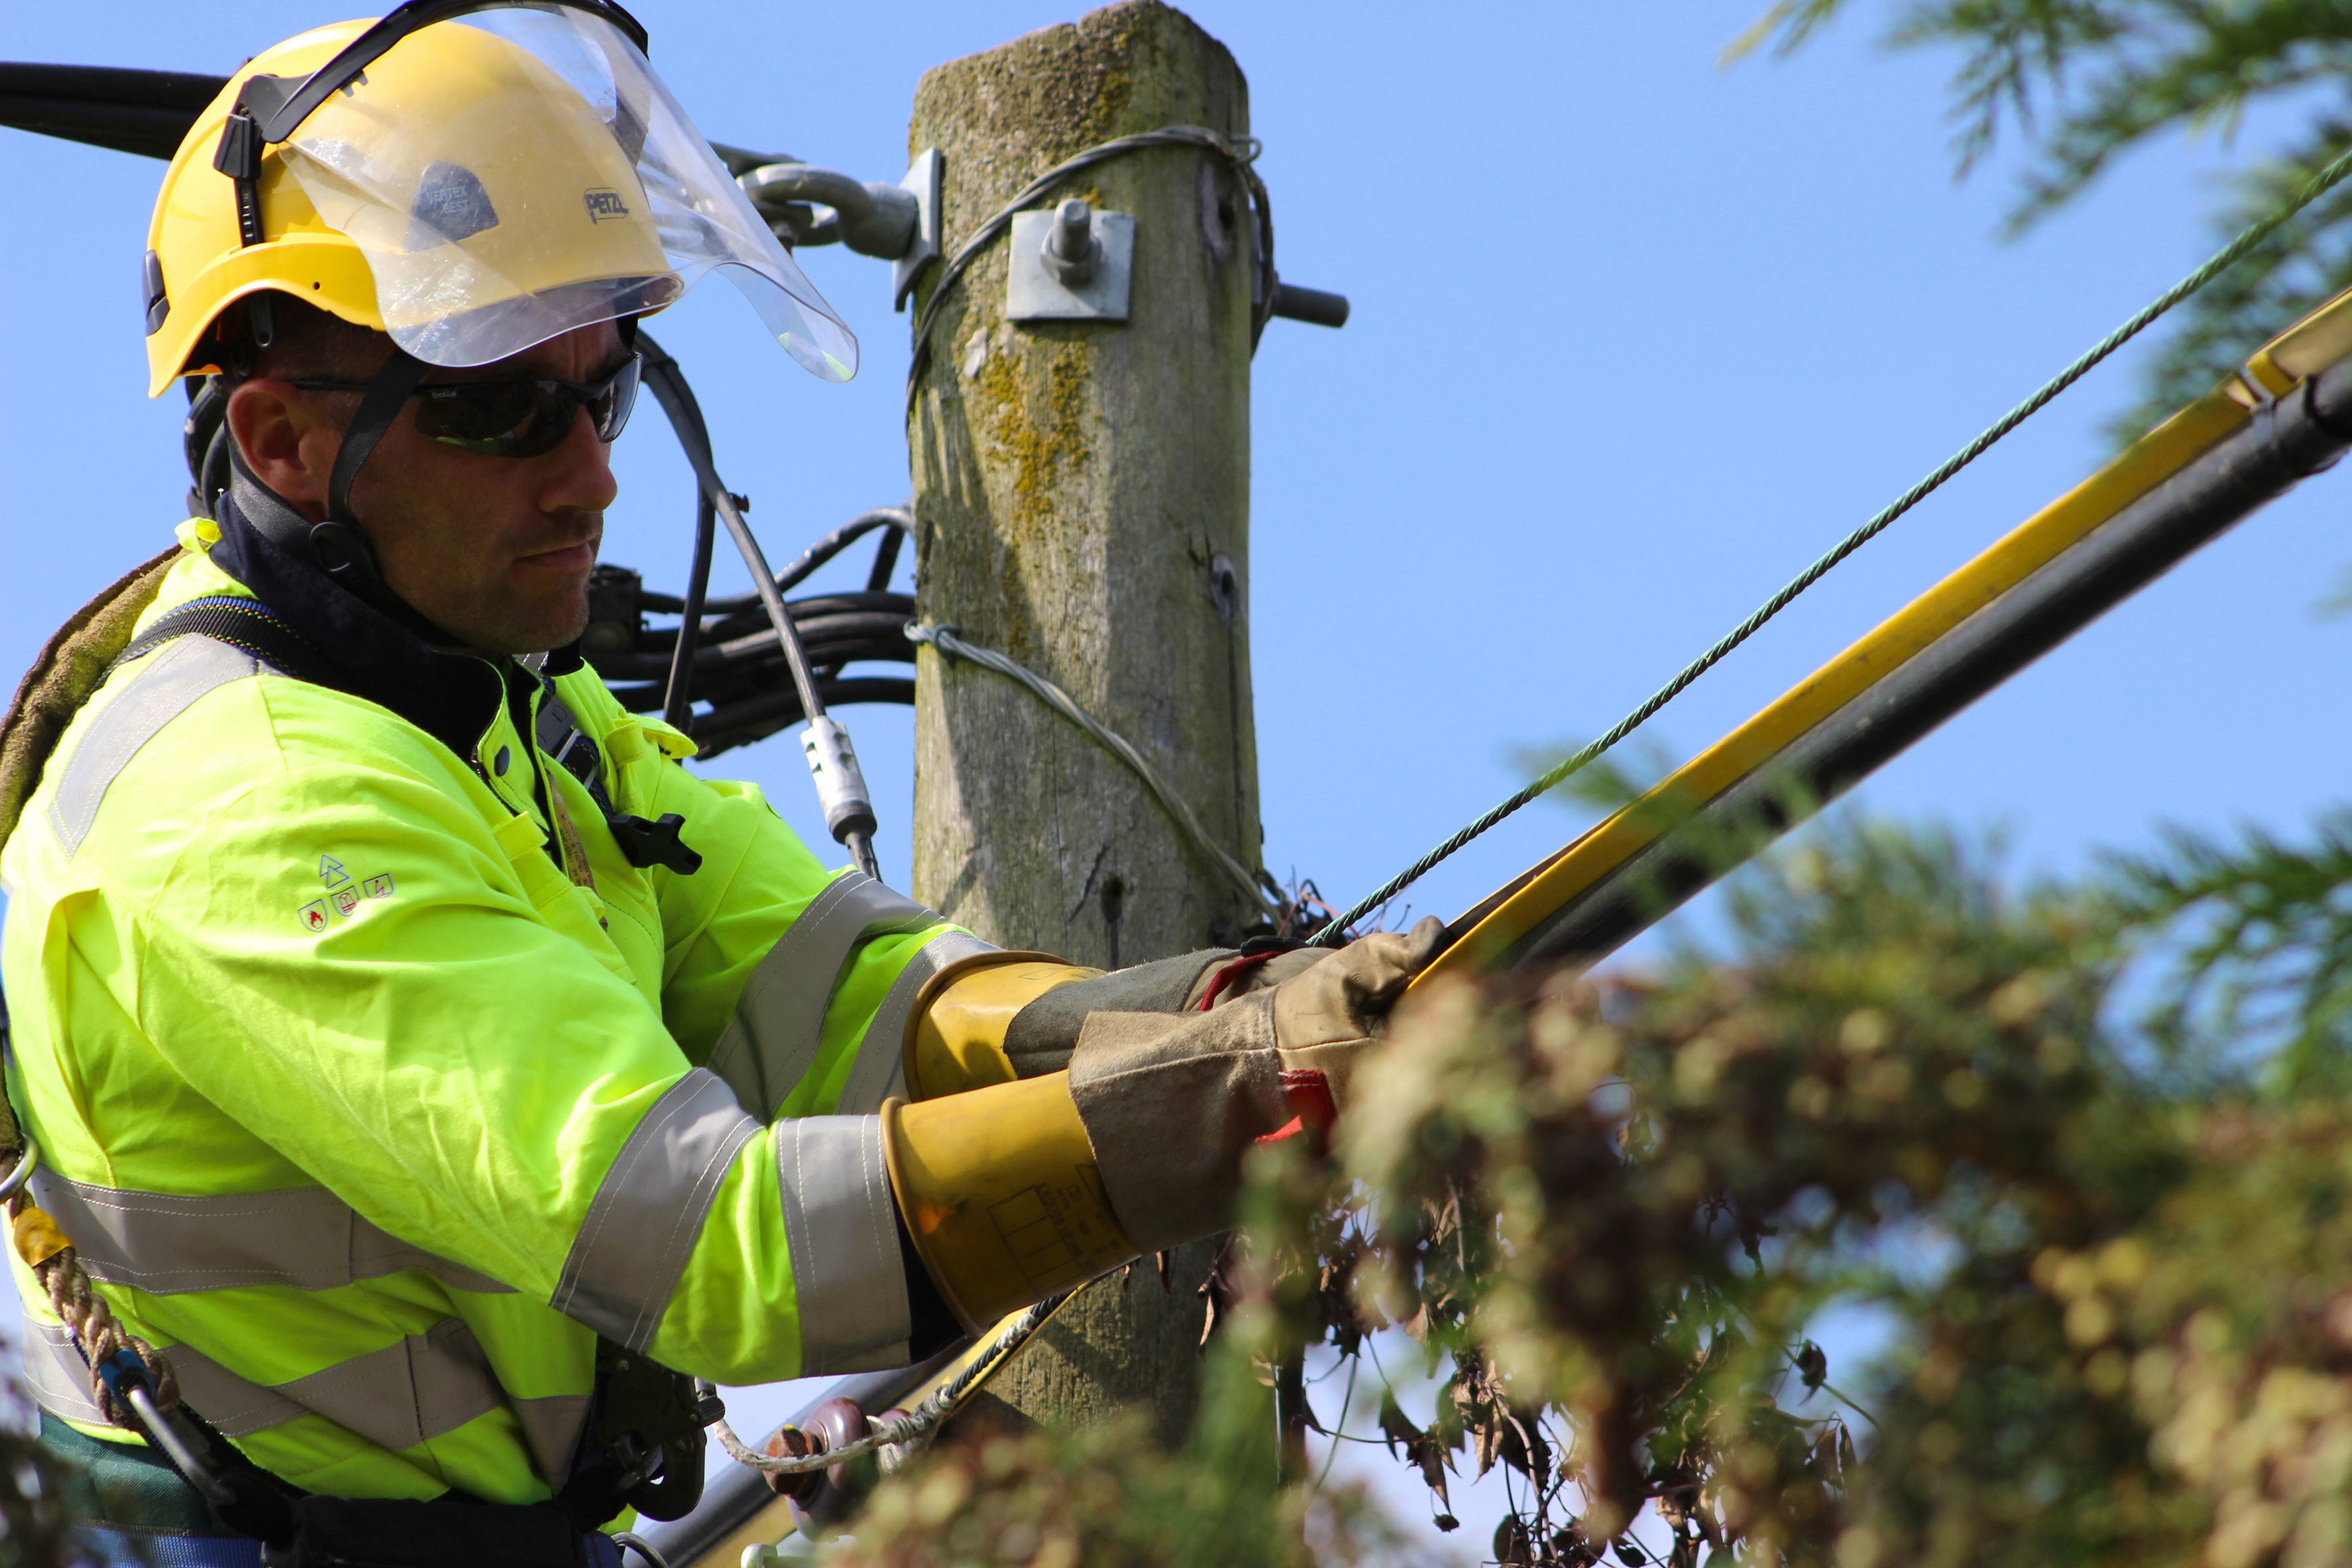 An SSE engineer works to restore electricity